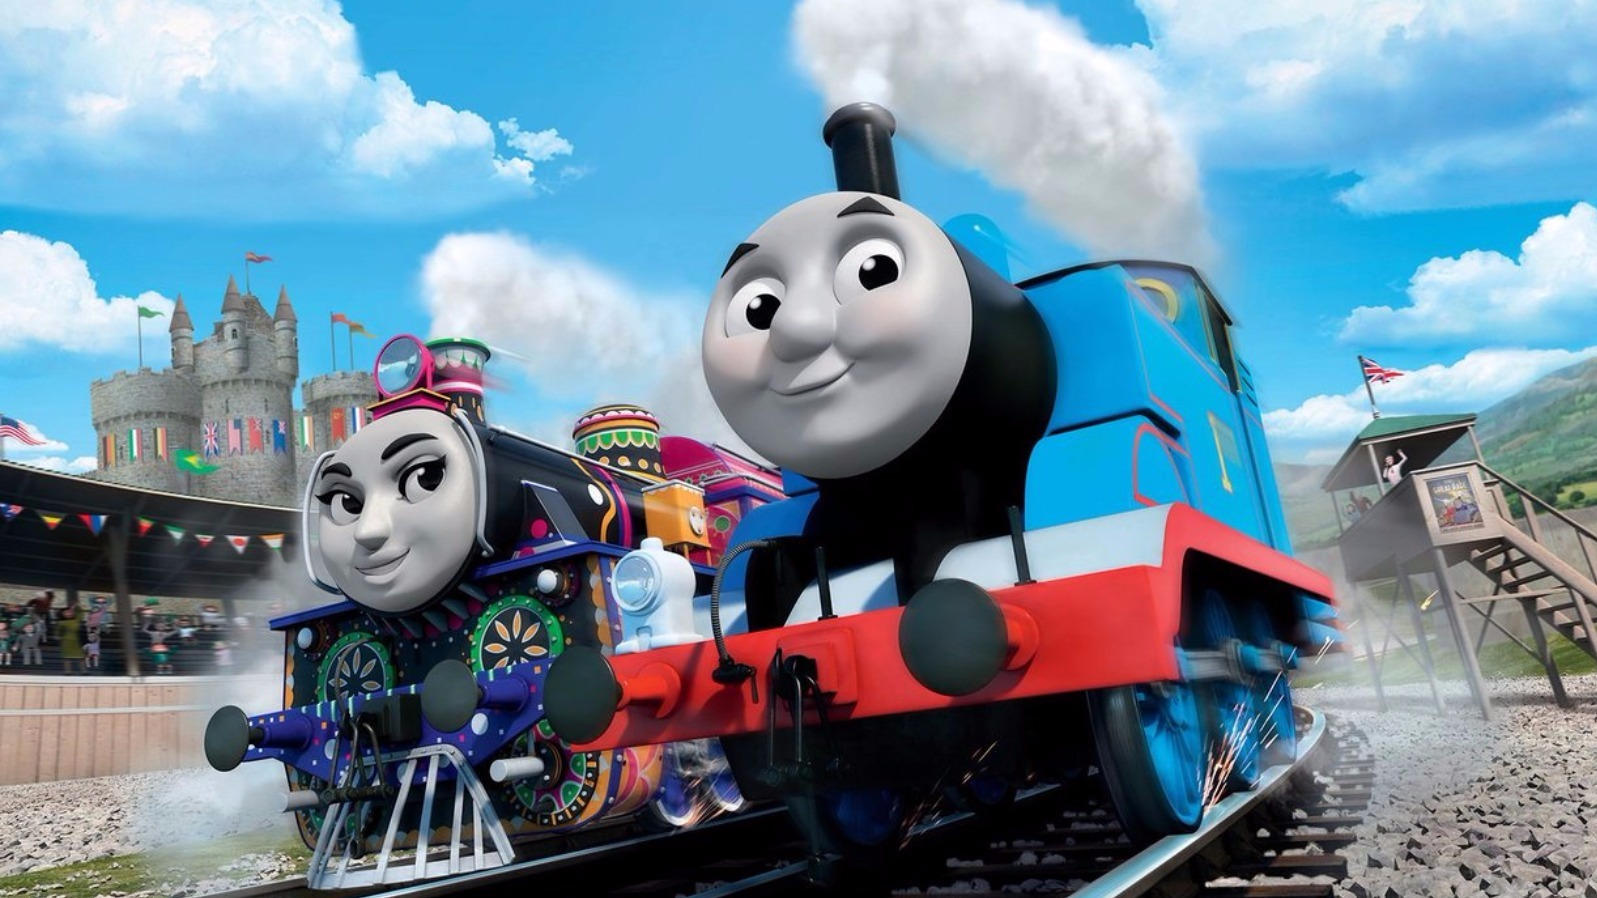 Thomas The Tank Engine To Be More Ethnically Diverse With 14 New Characters